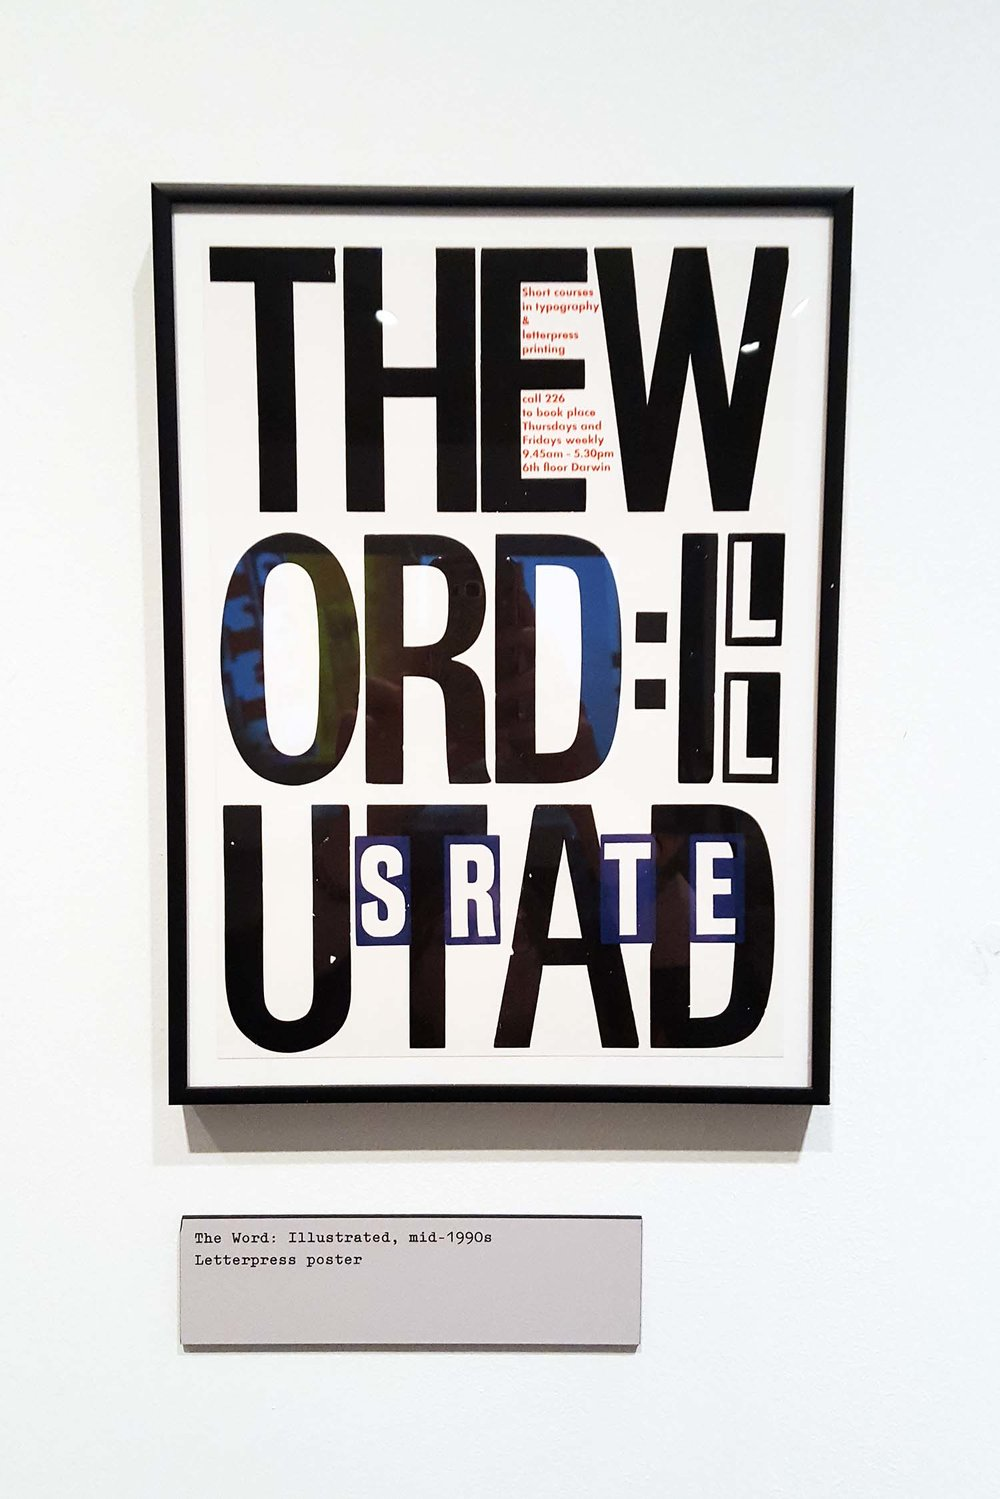 Letterpress, Alan Kitching exhibition